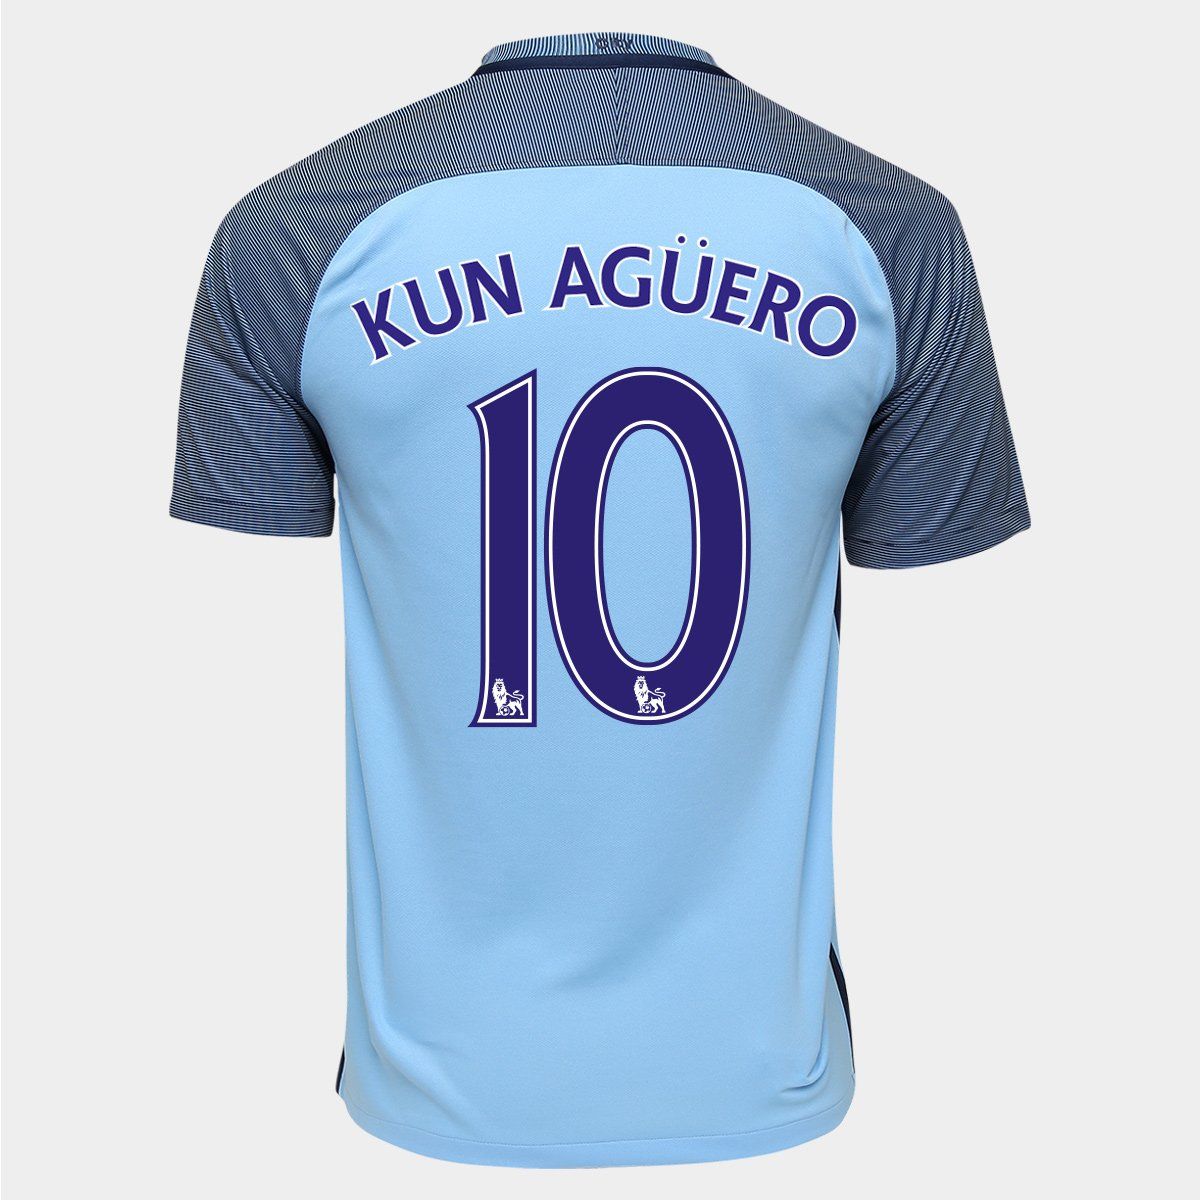 0a7bbb2d31 Camisa Nike Manchester City Home 16 17 n° 10 - Kun Agüero - Compre Agora